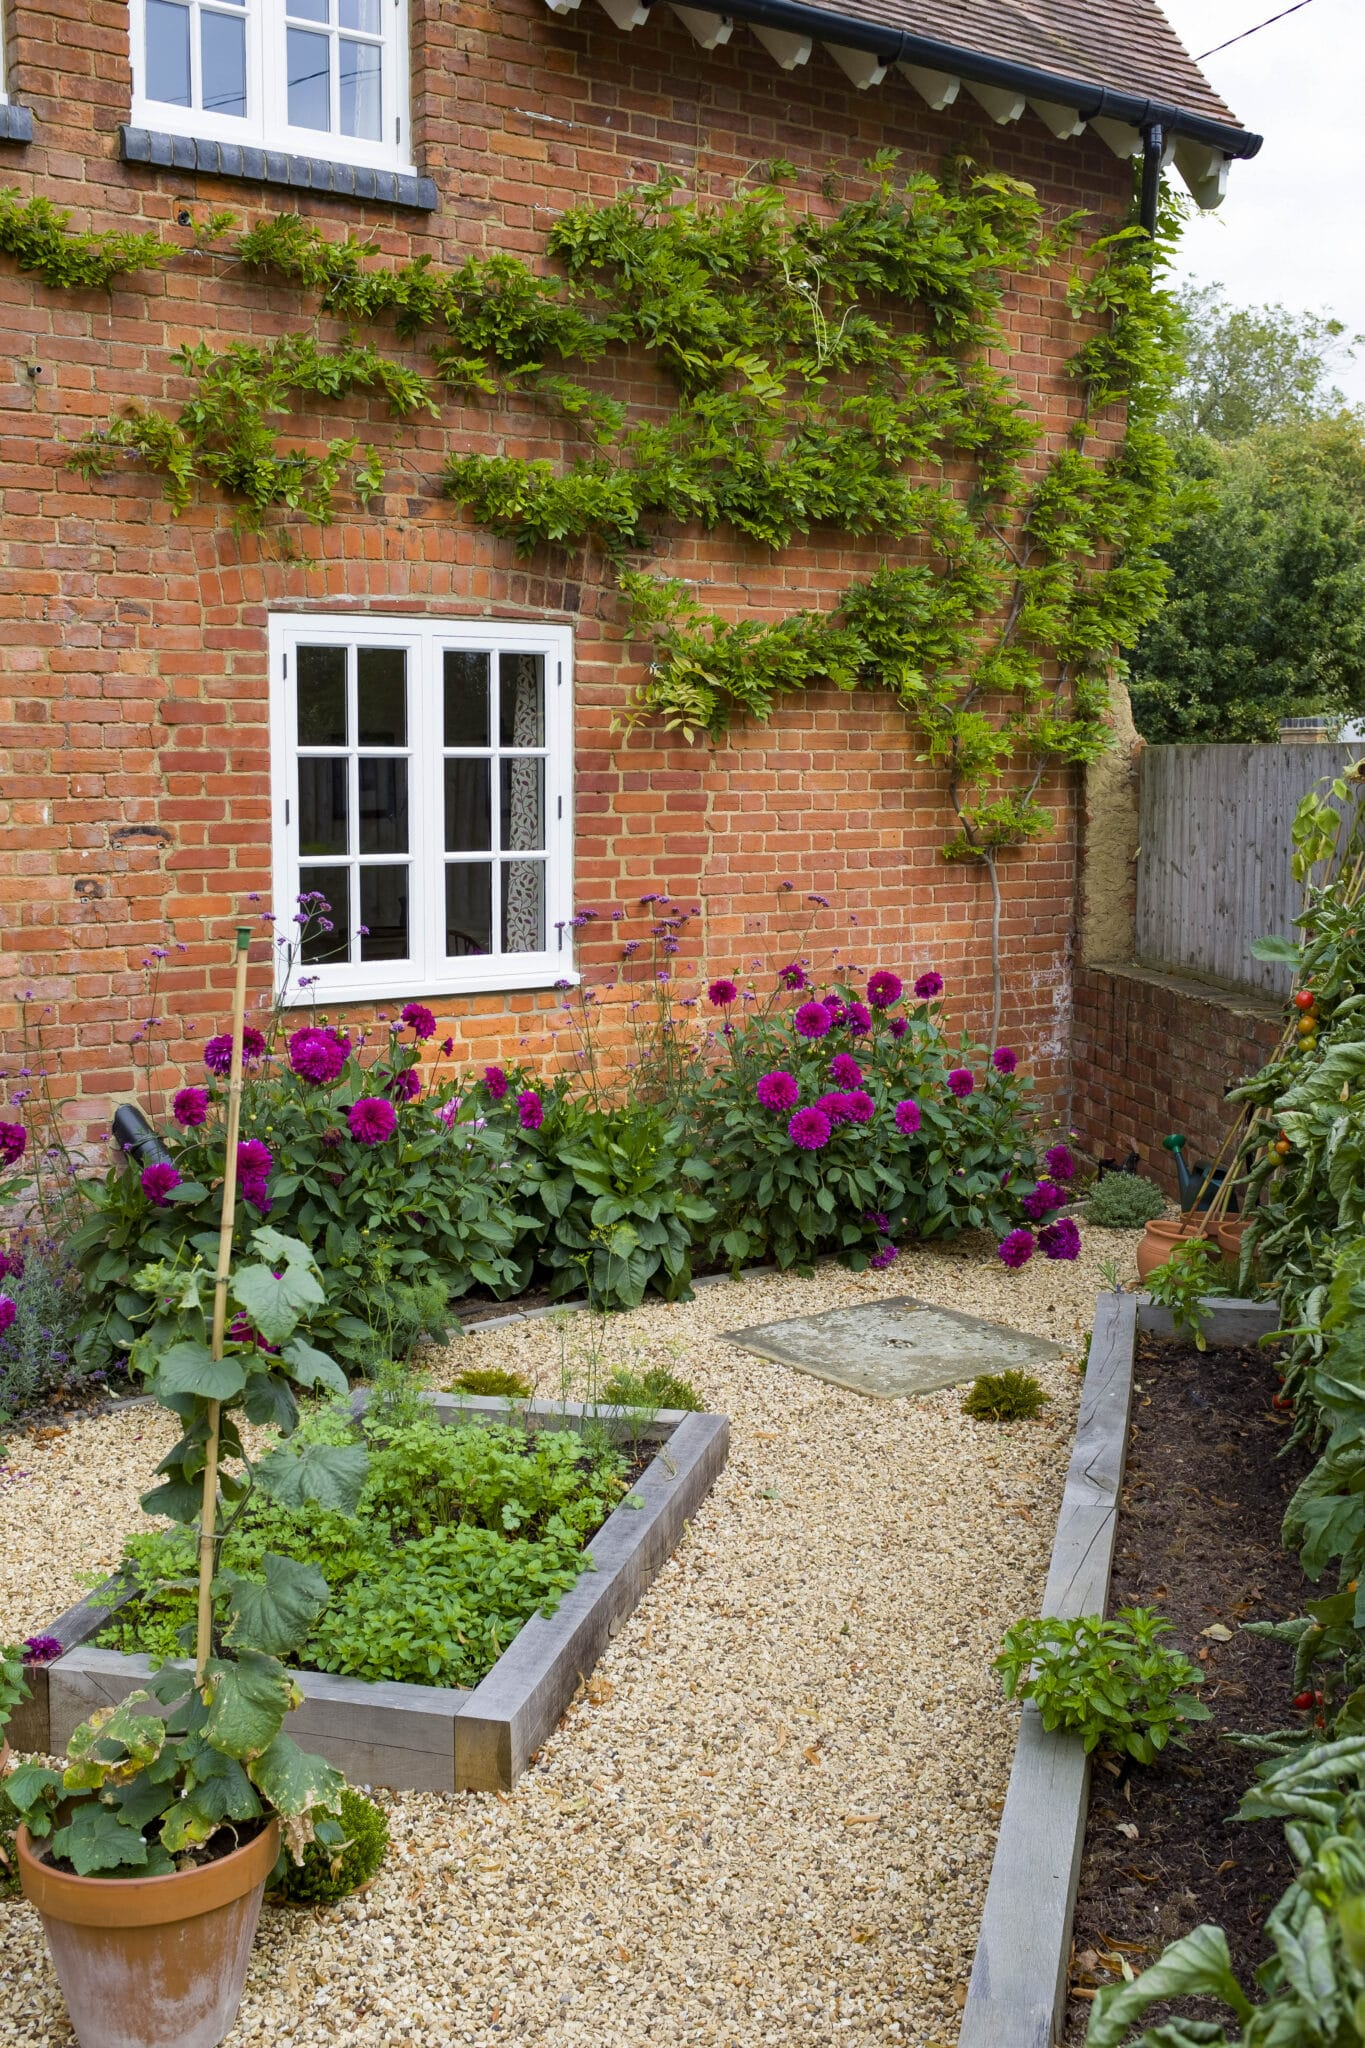 A small backyard garden using raised beds, containers, and vertical gardening as garden ideas for small spaces.